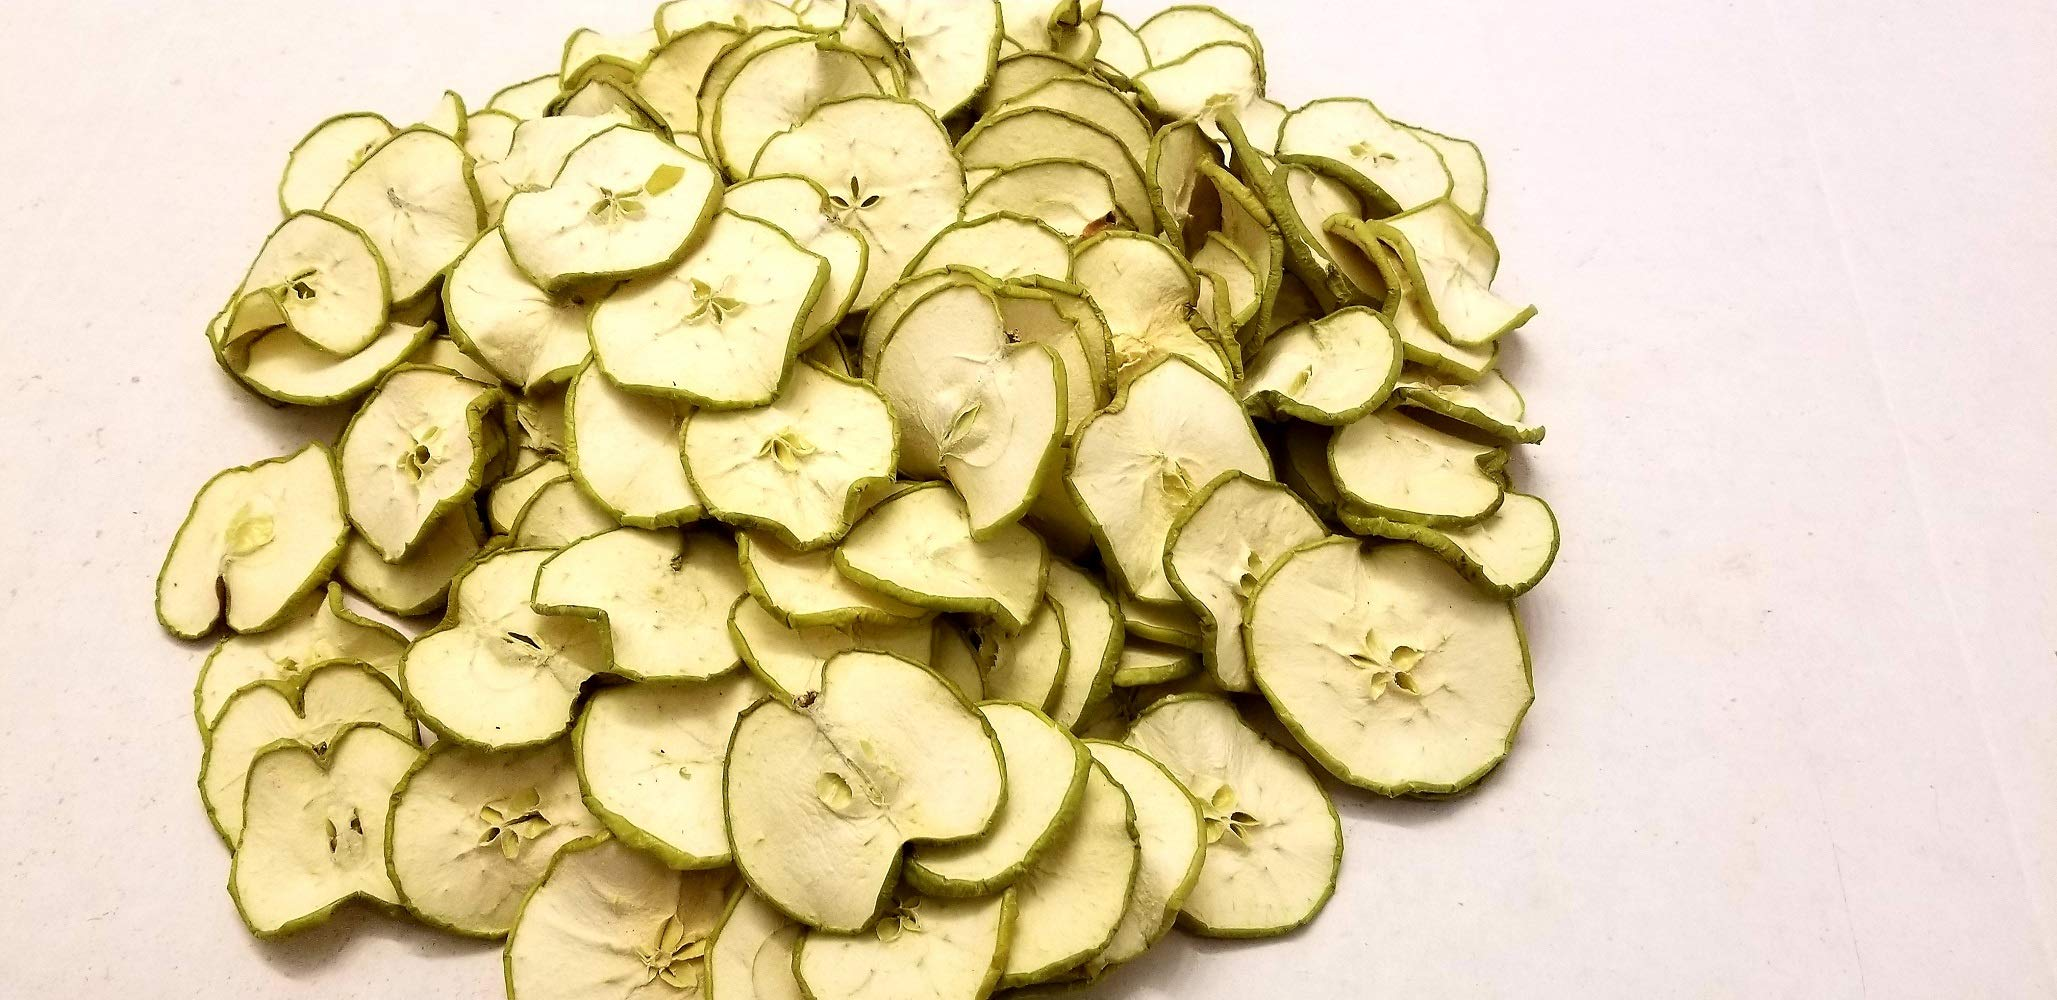 Little Valley Large 1 LB. Bag Dried Green Apple Slices - Perfect as Potpourri, Craft, Bowl Filler, Decoration - Not Meant Human Consumption by Little Valley